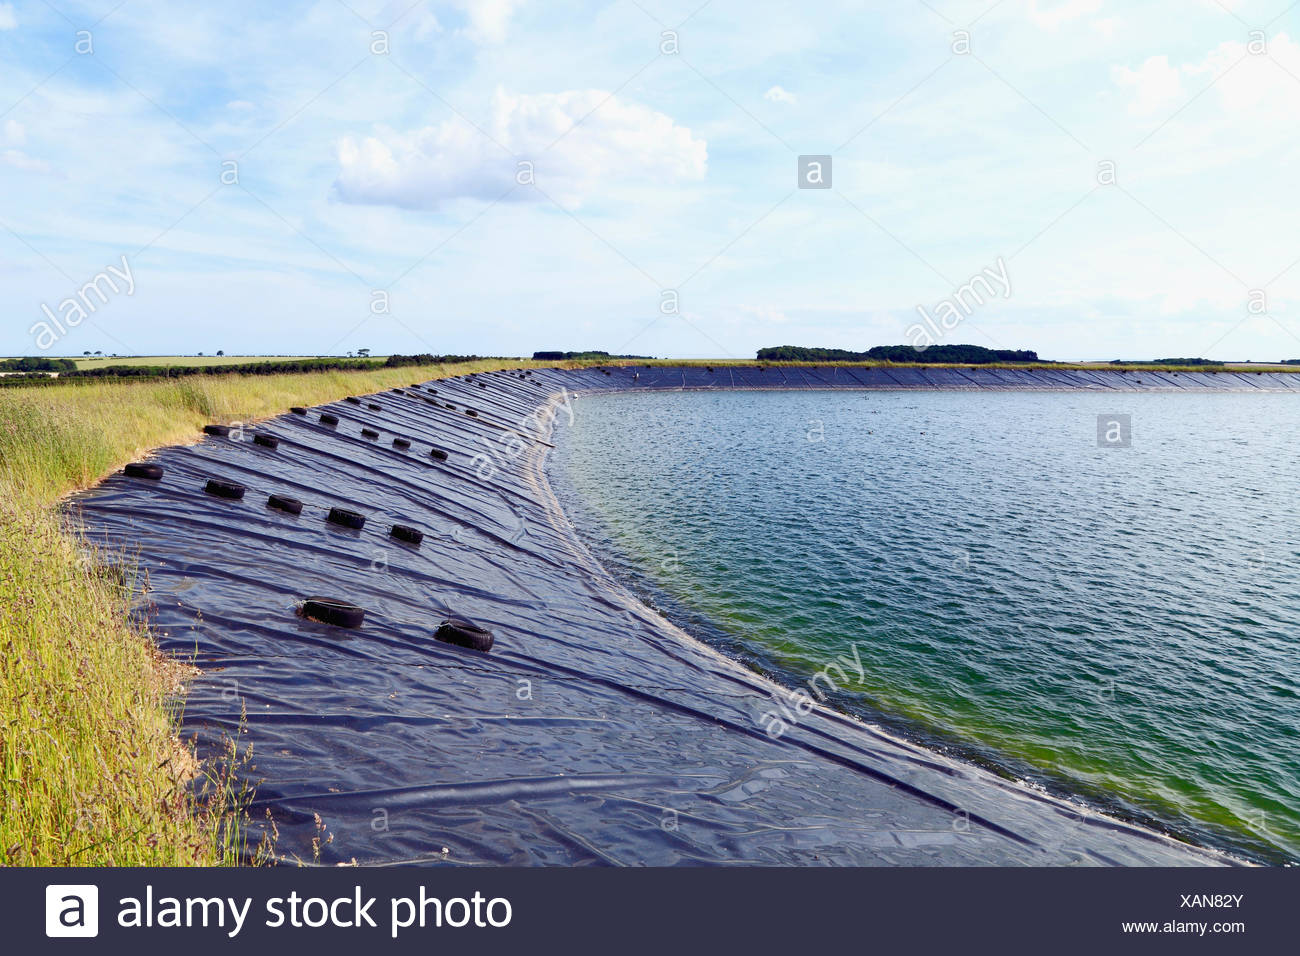 agricultural reservoir, man made, water supply for agriculture, Norfolk, England, crop irrigation, UK, reservoirs - Stock Image